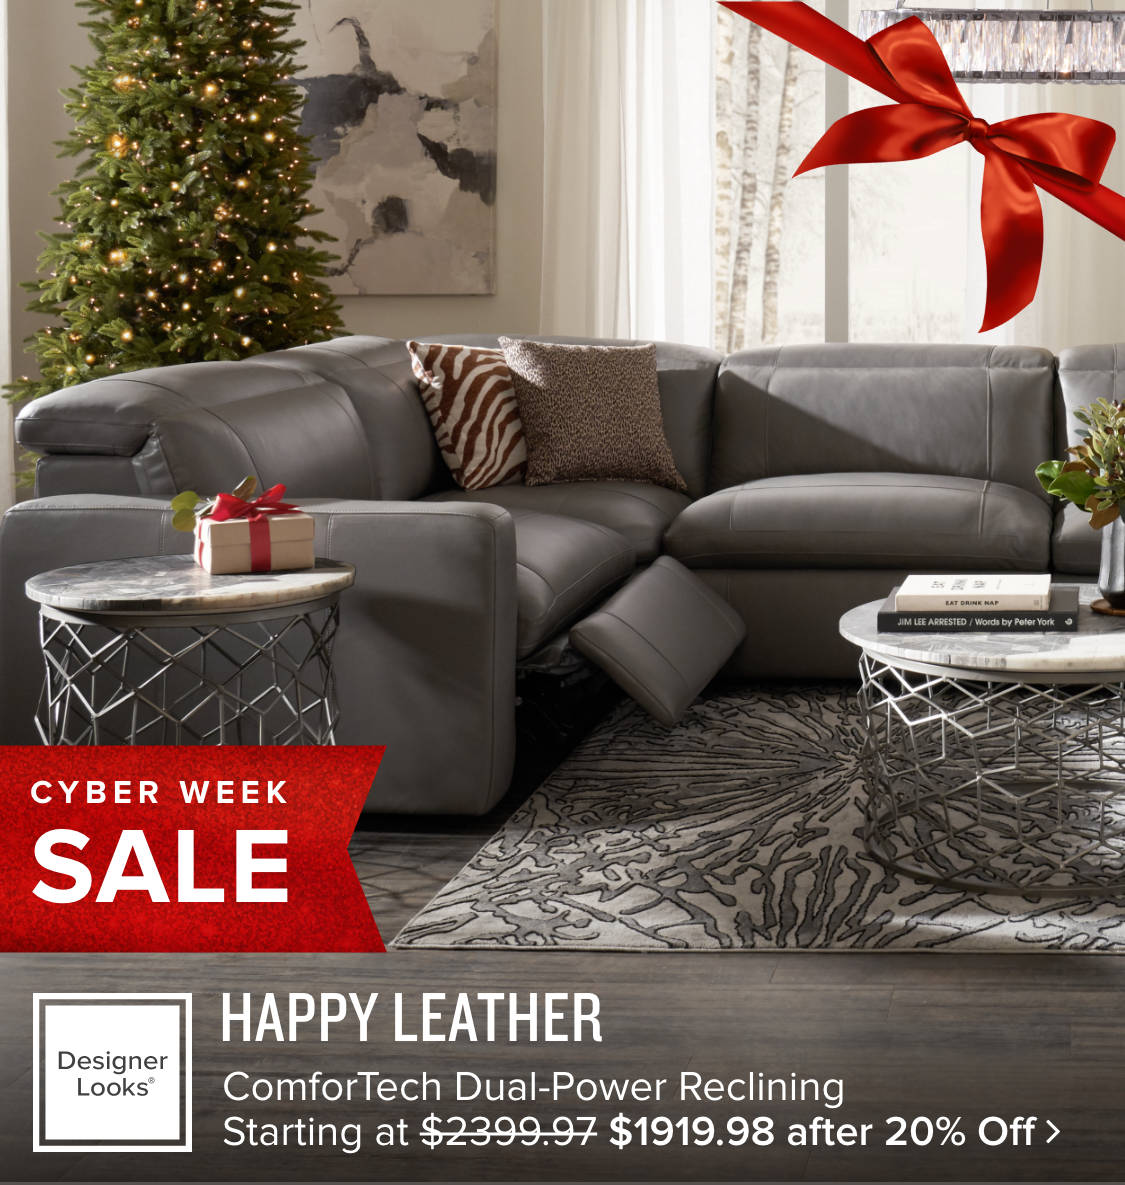 Happy Leather Reclining Sectional $1919.98 after 20% Off